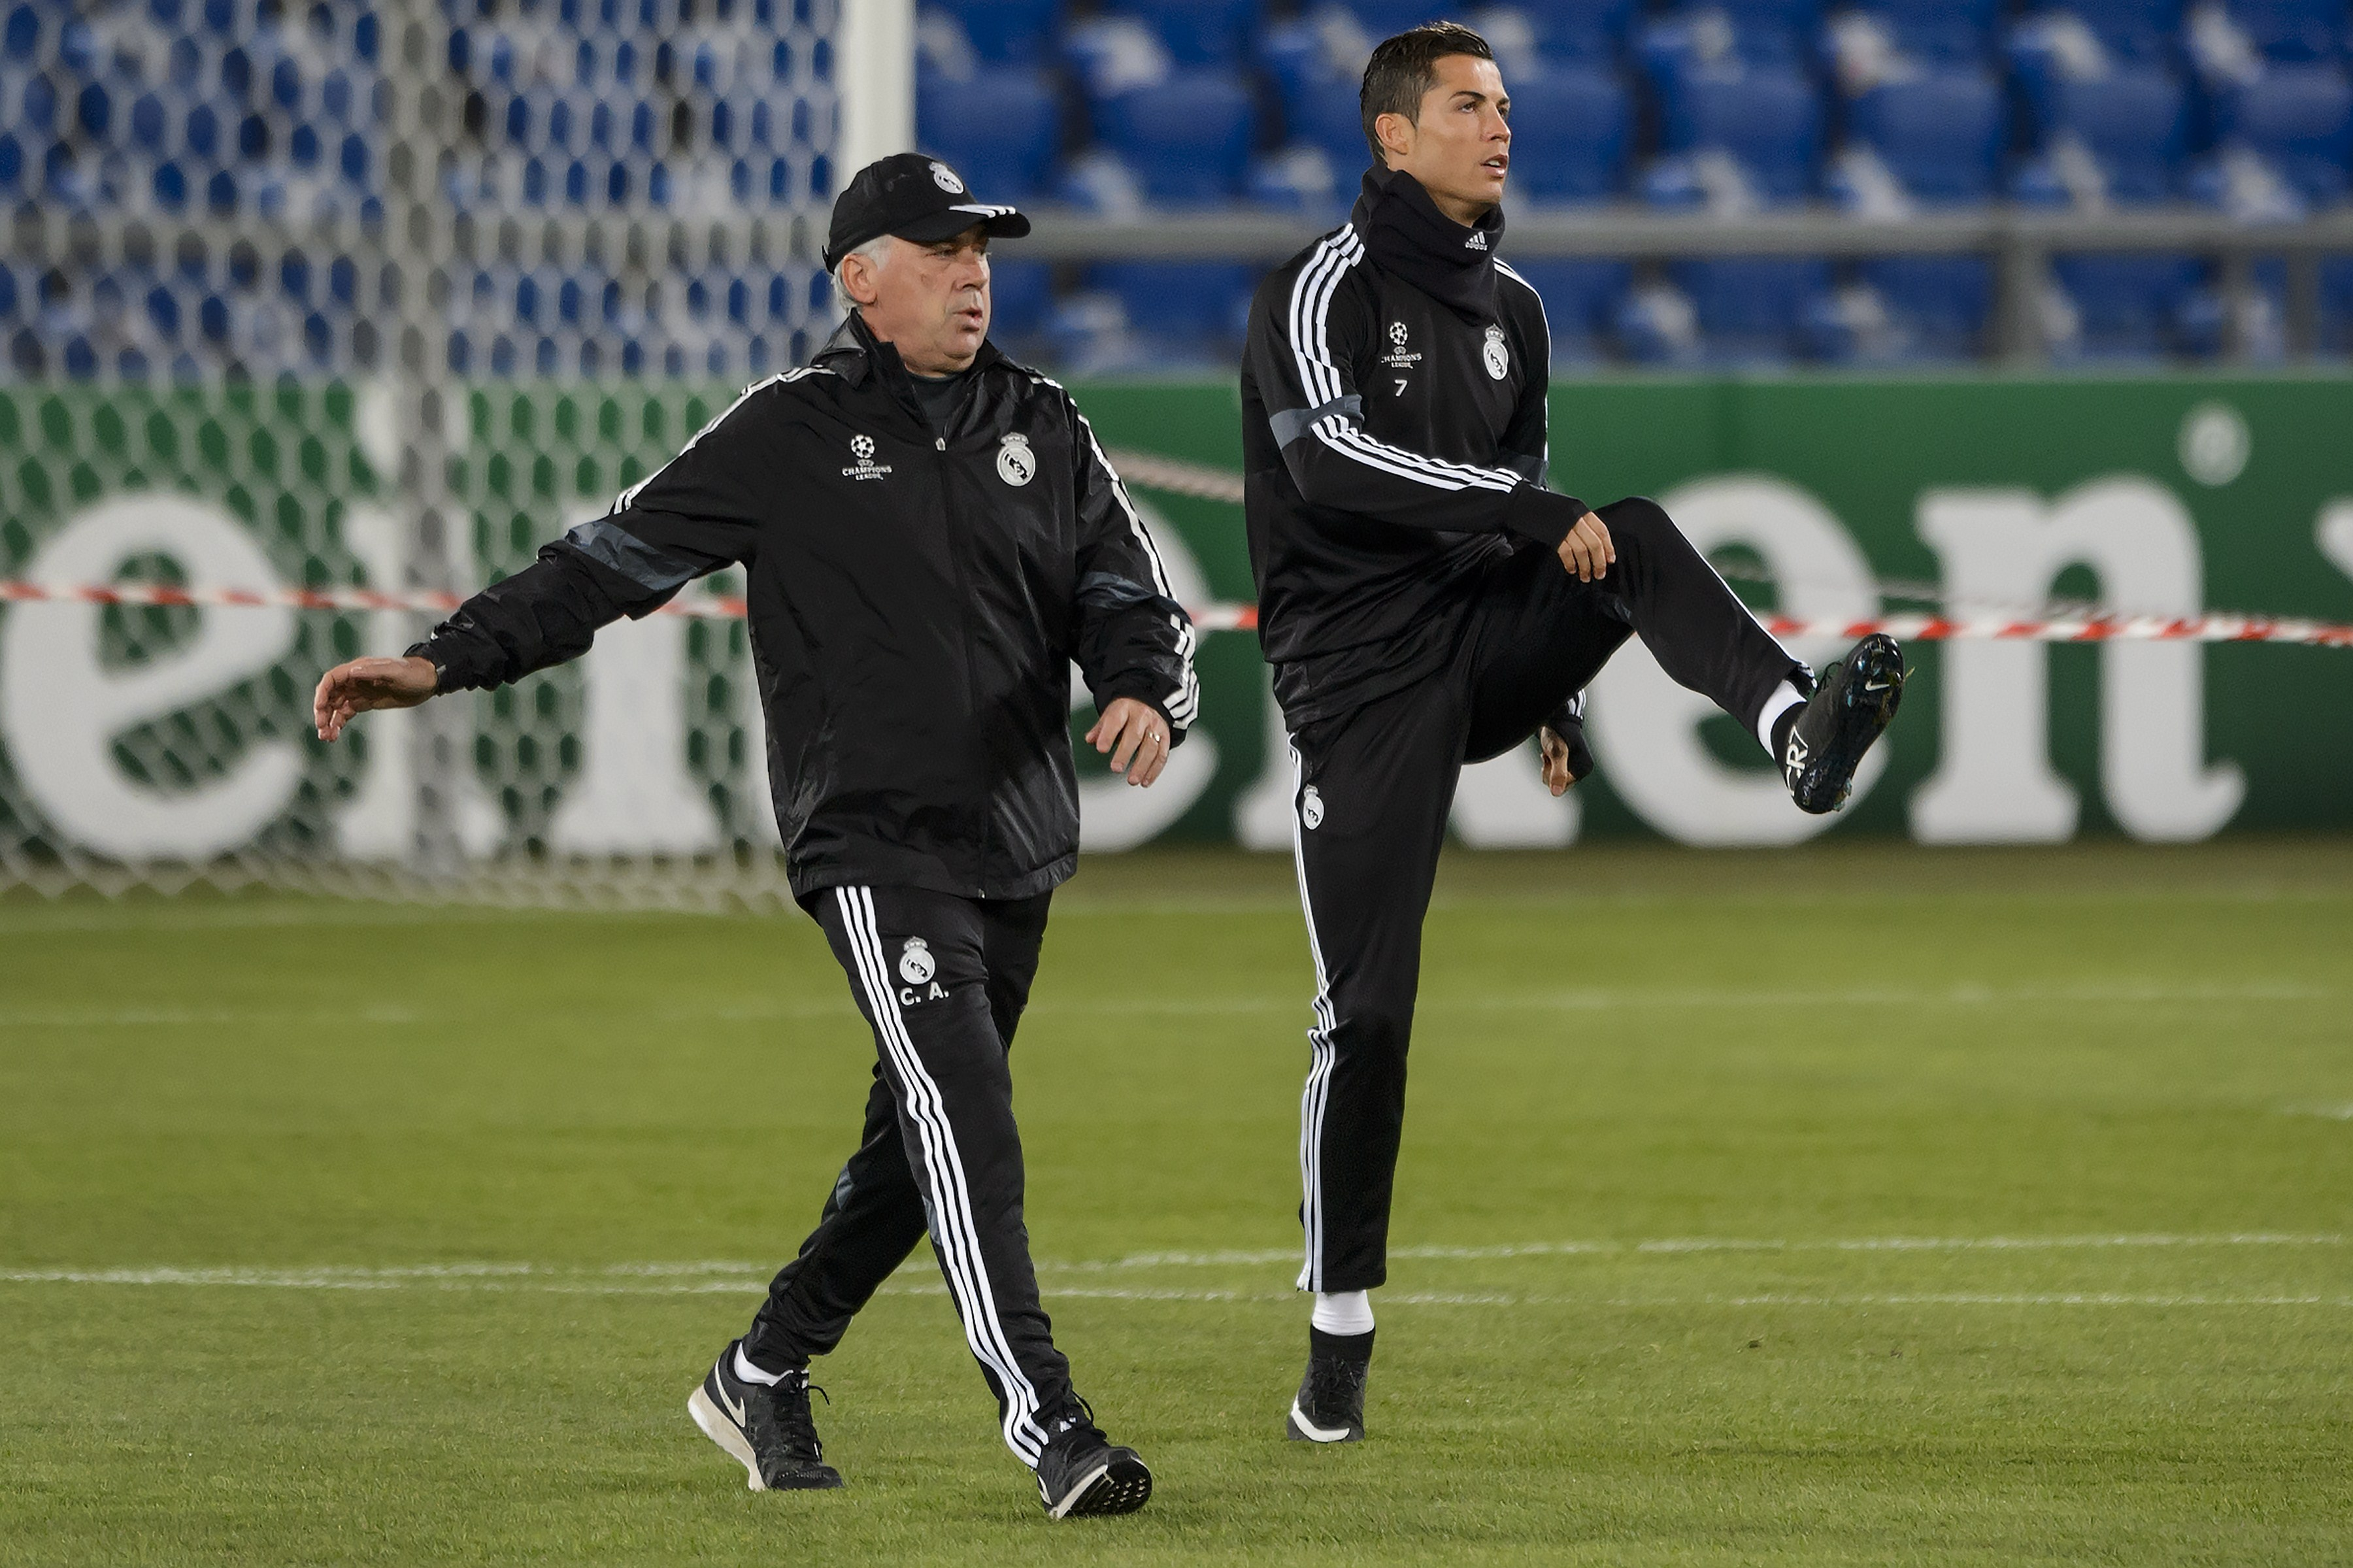 Real Madrid's Portuguese forward Cristiano Ronaldo (R) warms up next to Real Madrid's Italian coach Carlo Ancelotti during a training session on the eve of the UEFA Champions League Group B football match between FC Basel and Real Madrid on November 25, 2014 in Basel. AFP PHOTO / FABRICE COFFRINI (Photo credit should read FABRICE COFFRINI/AFP/Getty Images)